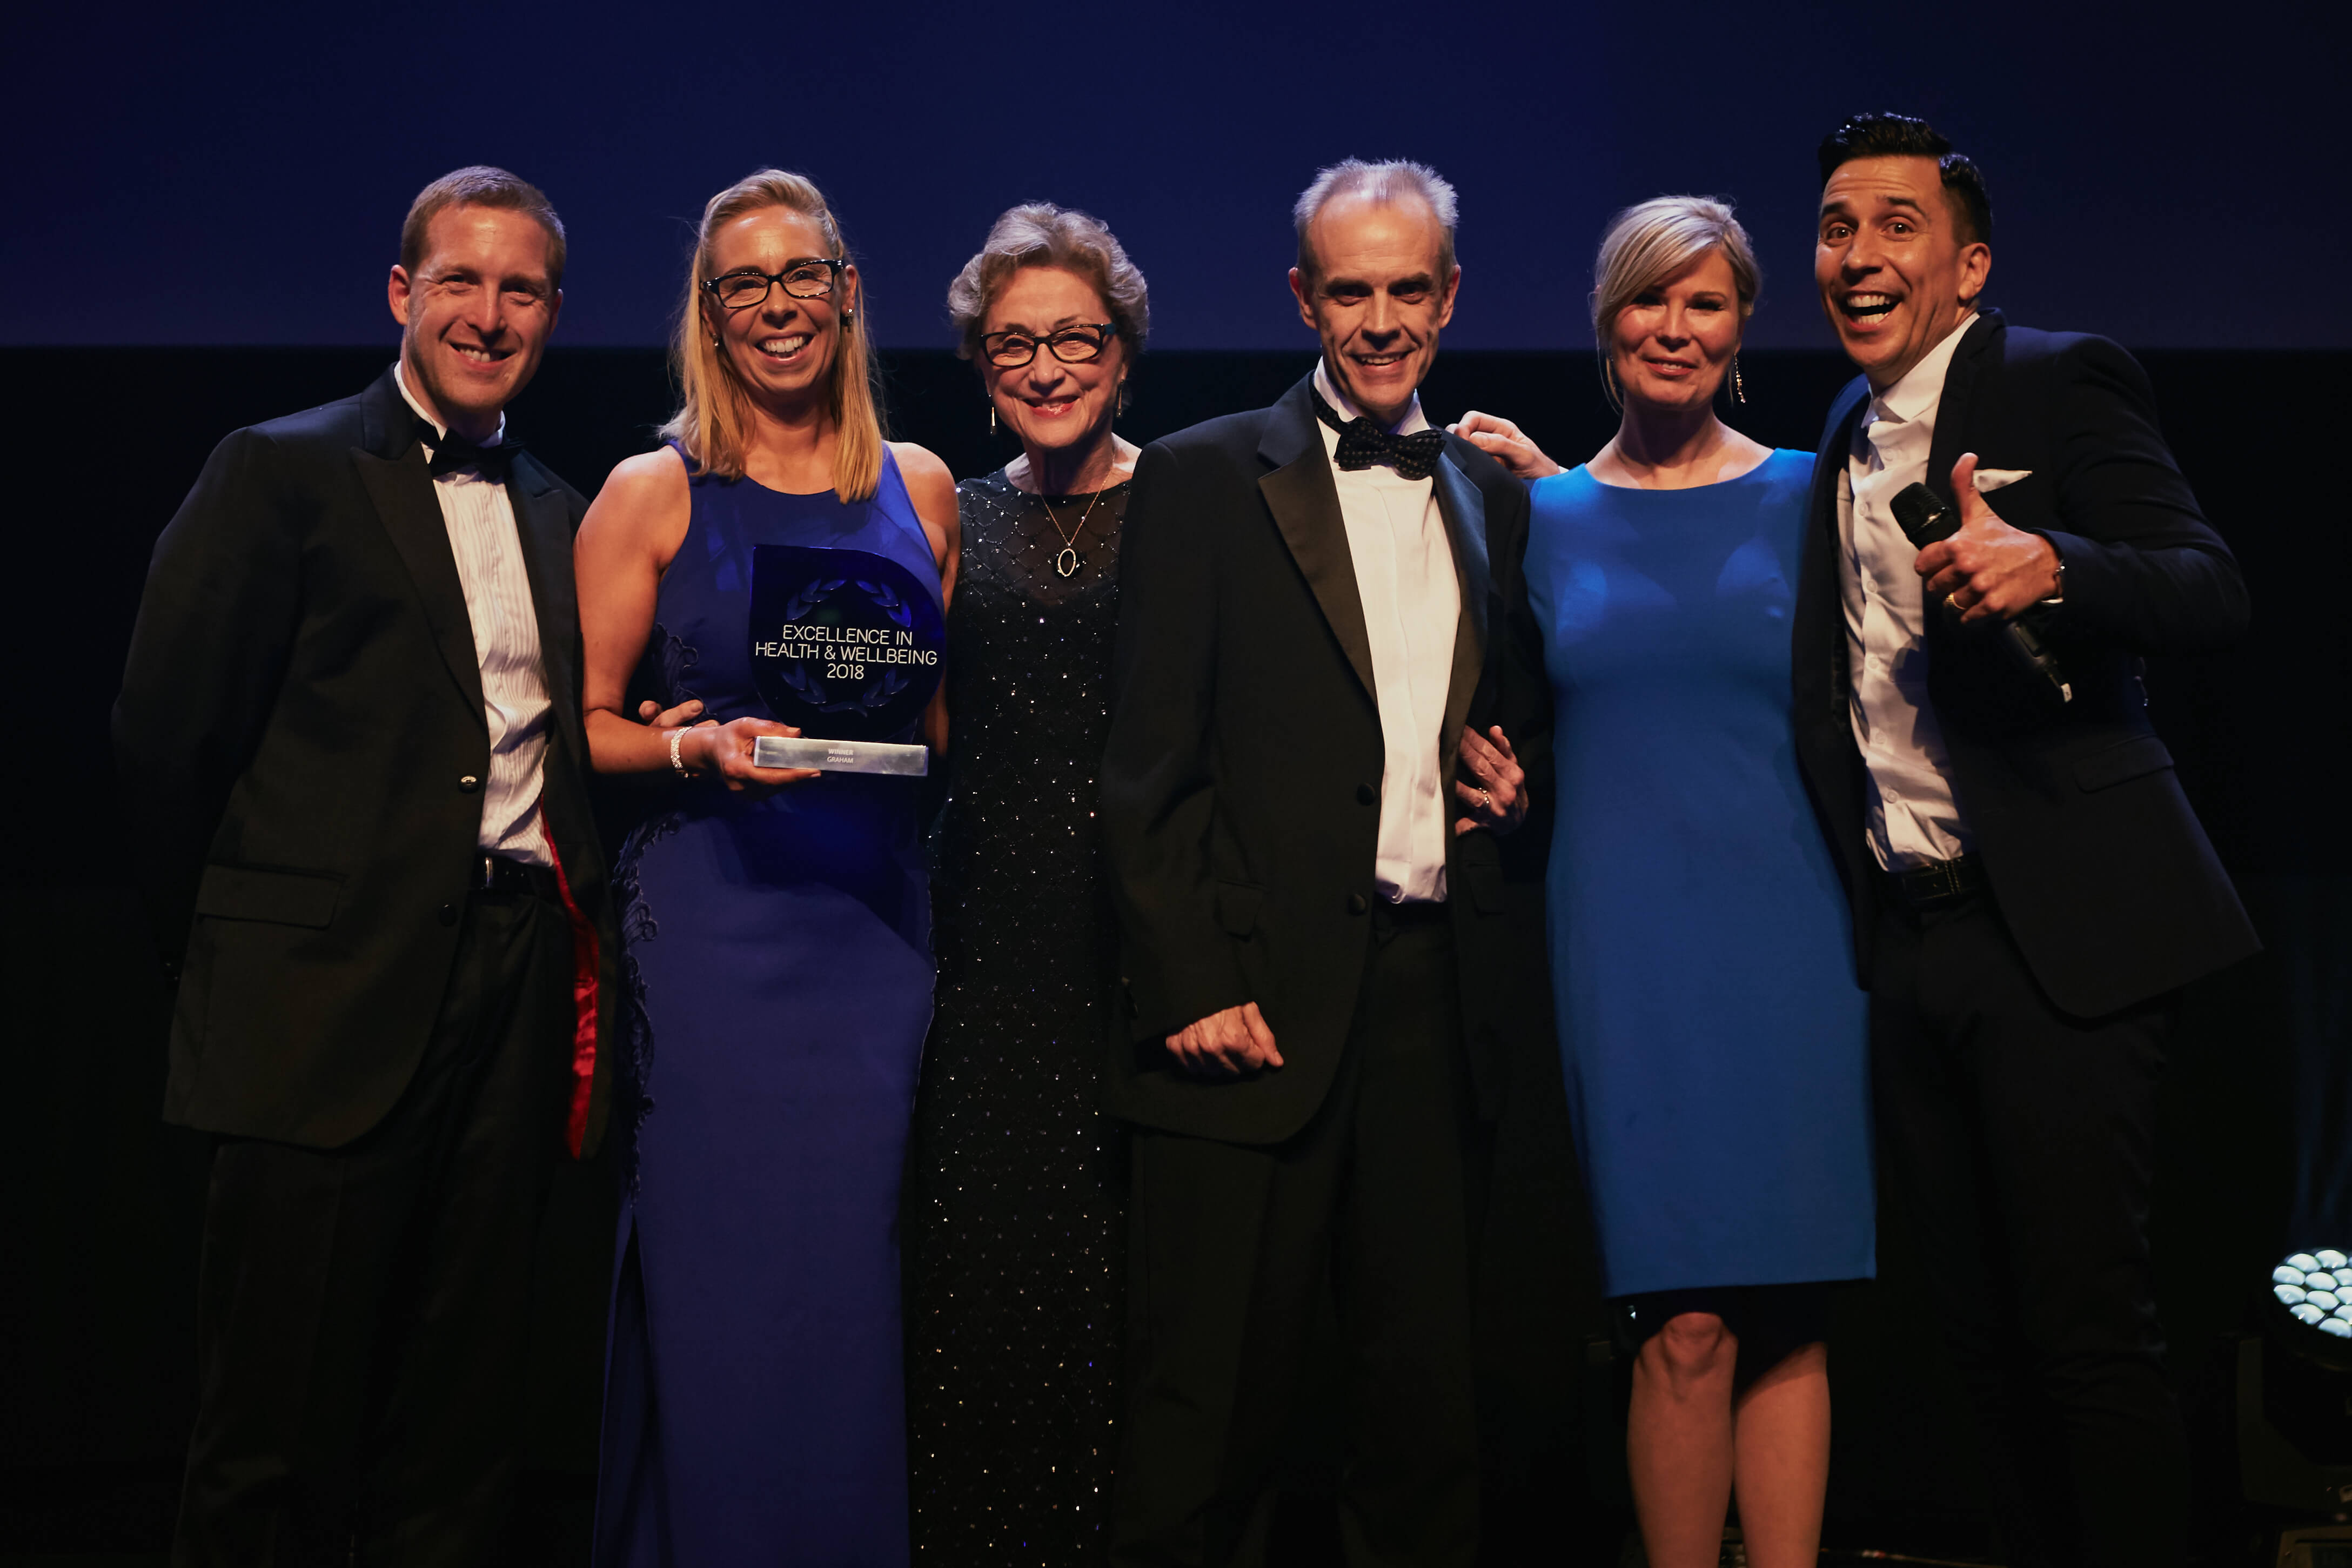 GRAHAM selected as inaugural winner of IIP Excellence in Health and Wellbeing Award image